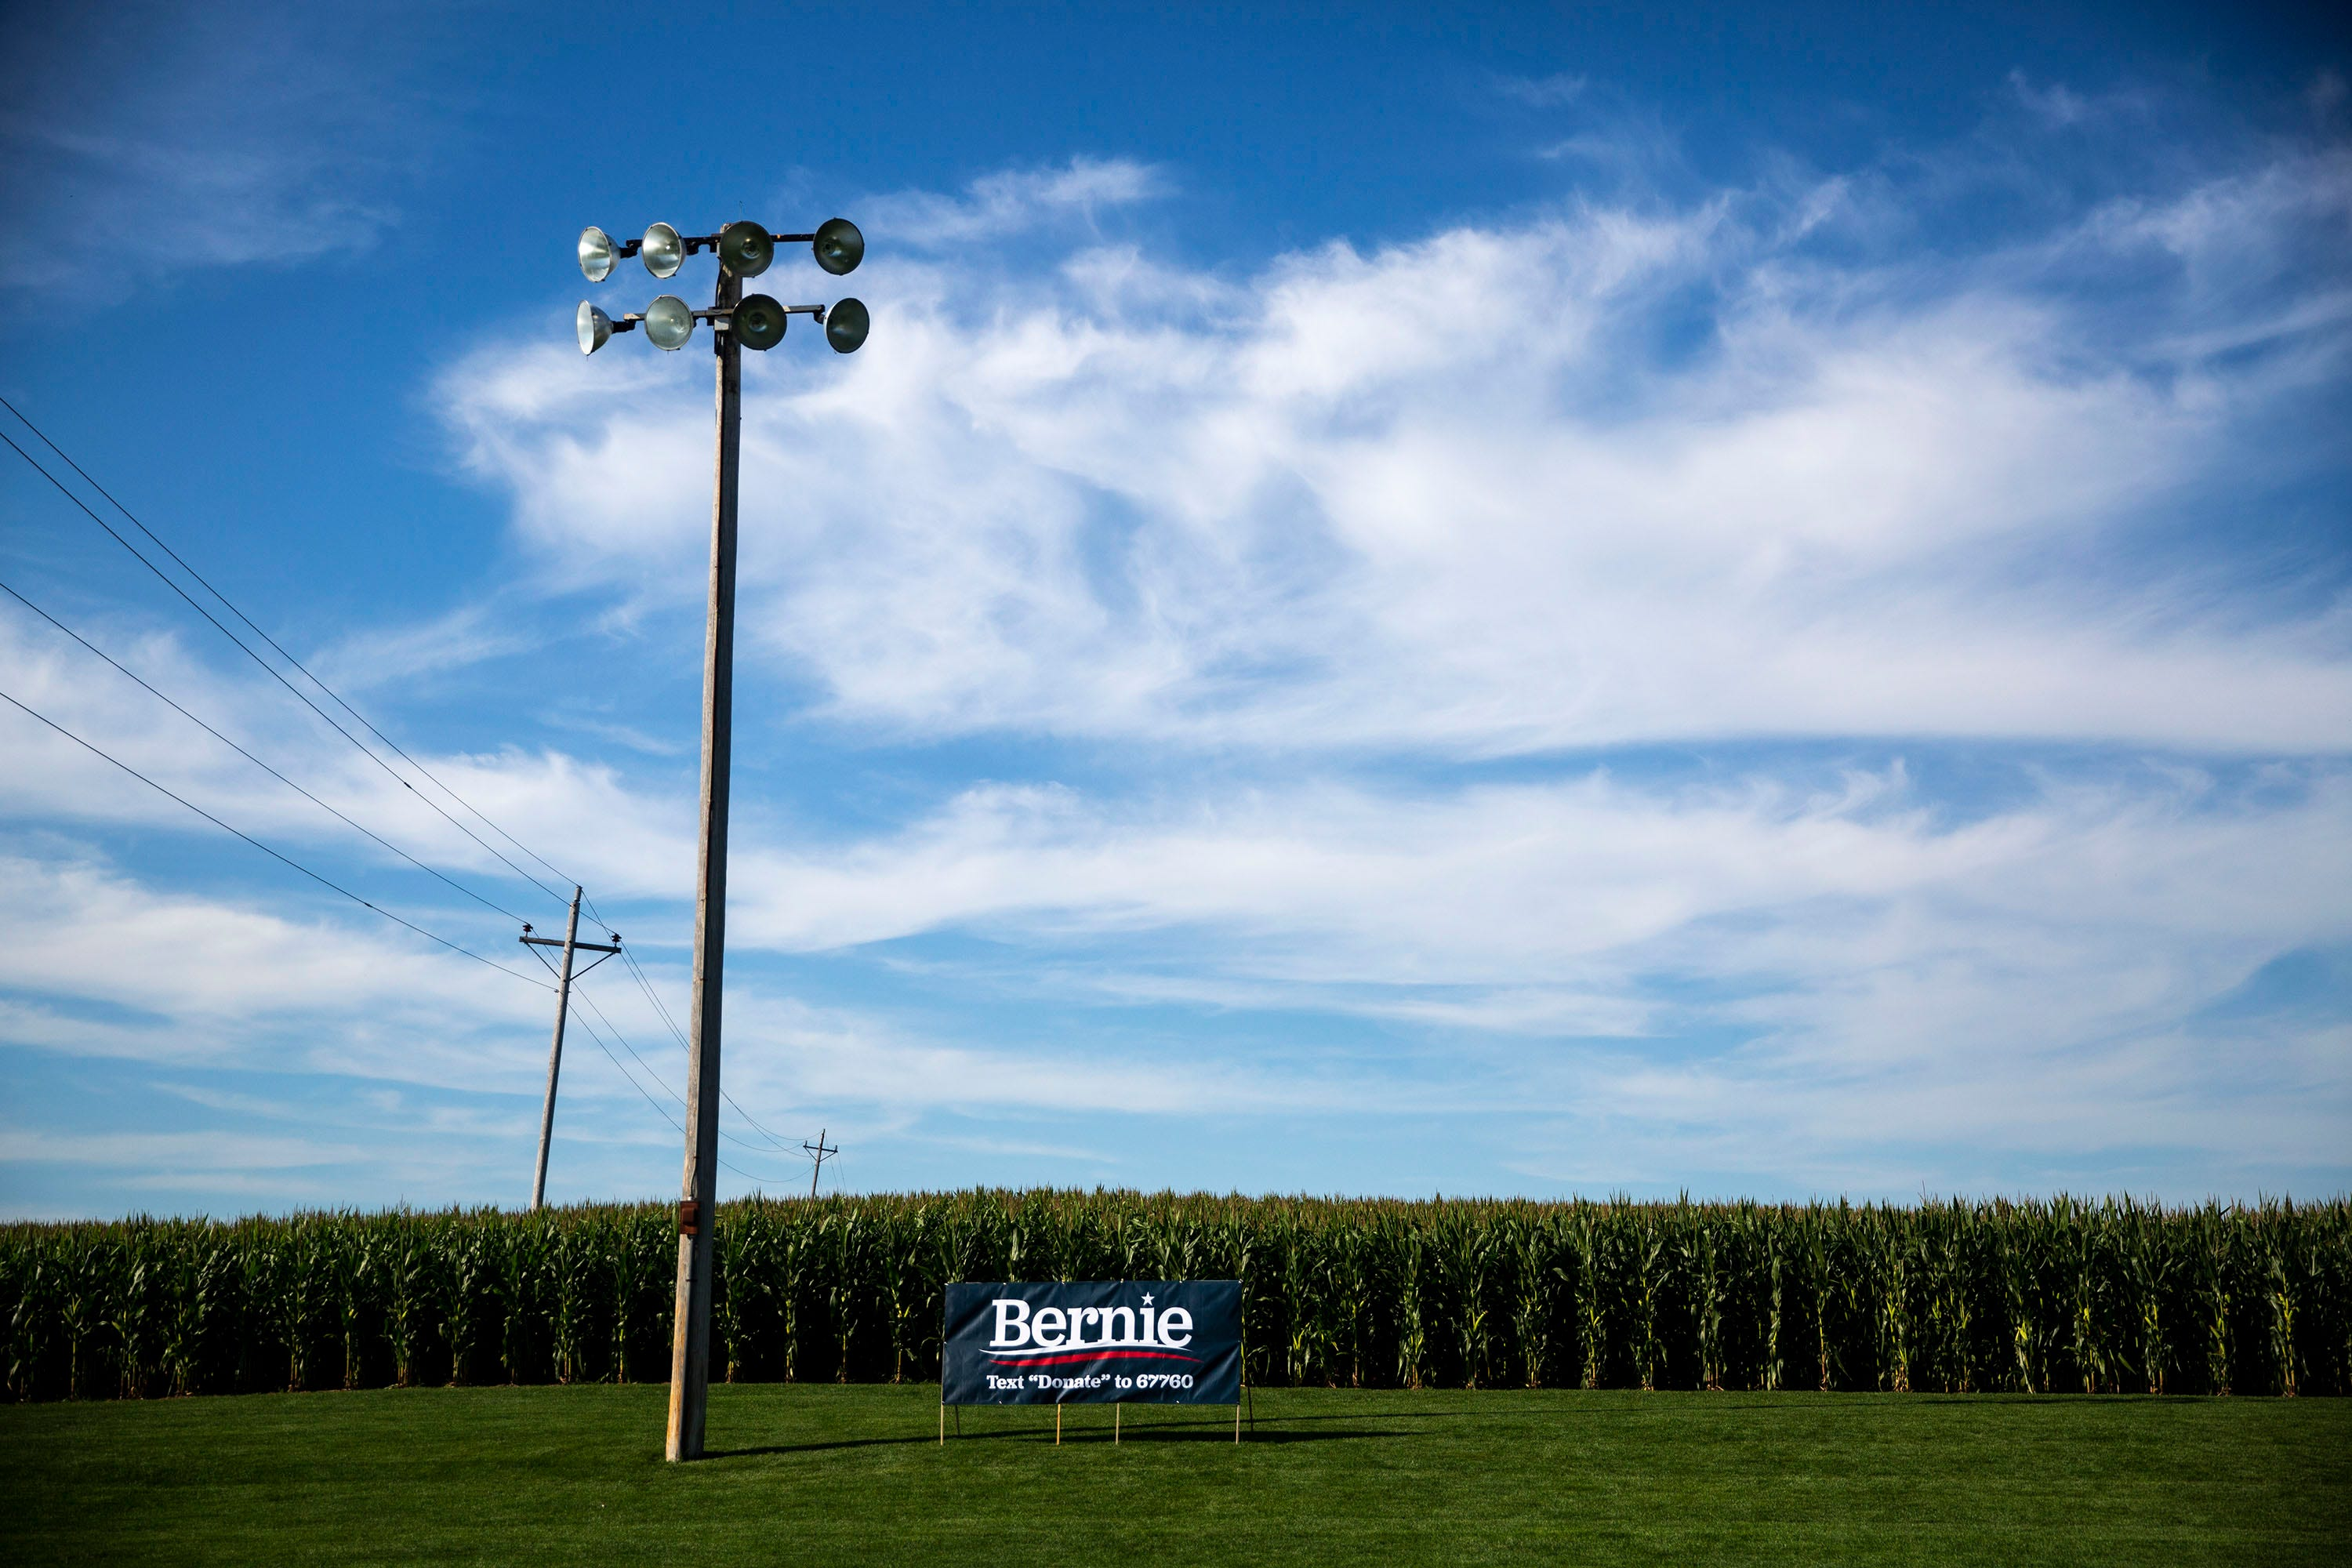 Photos: Bernie Sanders visits the Field of Dreams